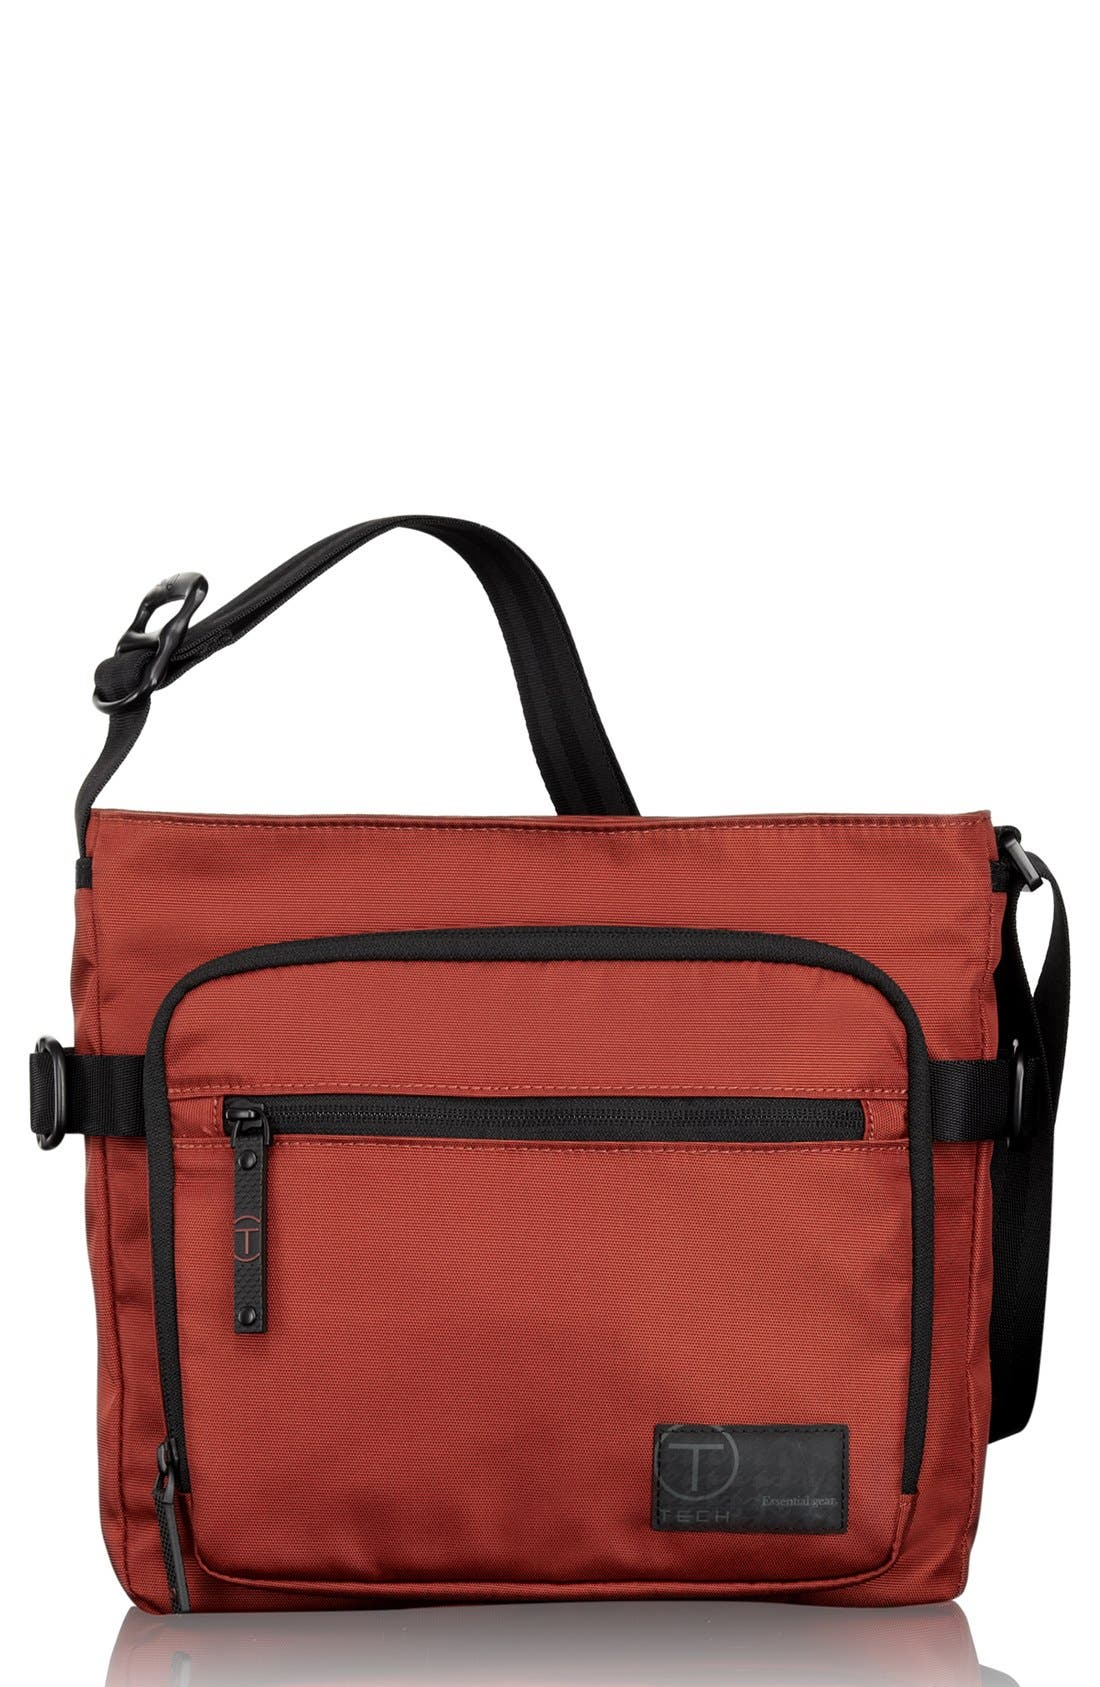 Main Image - T-Tech by Tumi 'Icon - King' Crossbody Bag